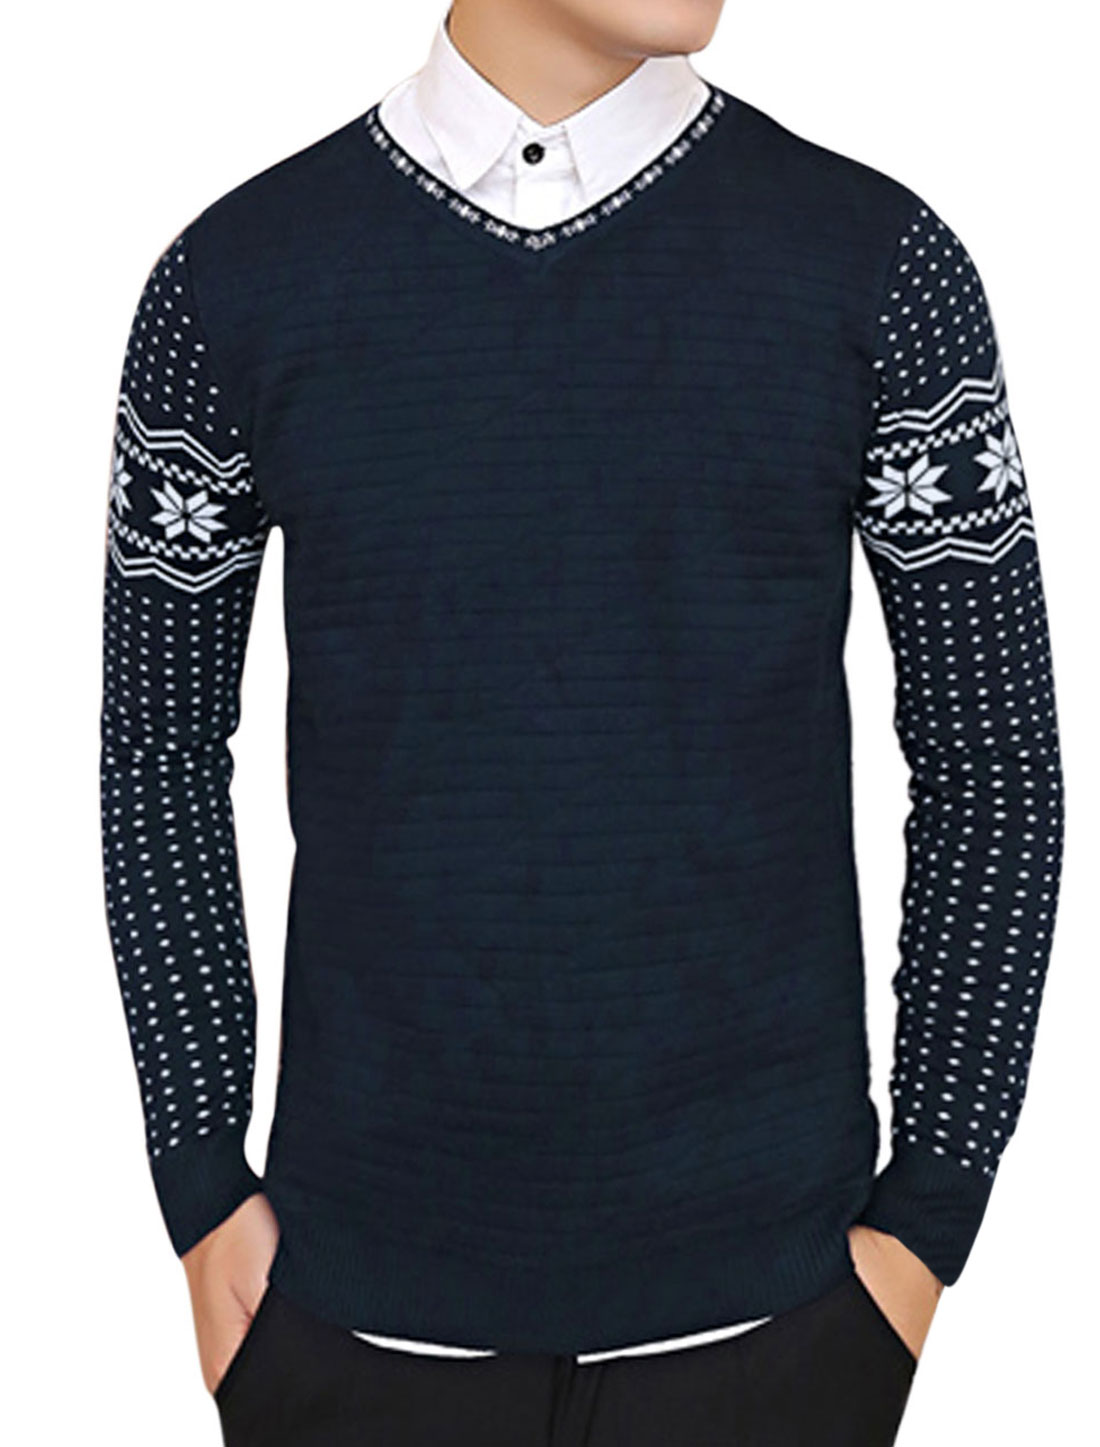 Men Long Sleeve Tiered design Geometric Pattern Leisure Knit Shirt Navy Blue M